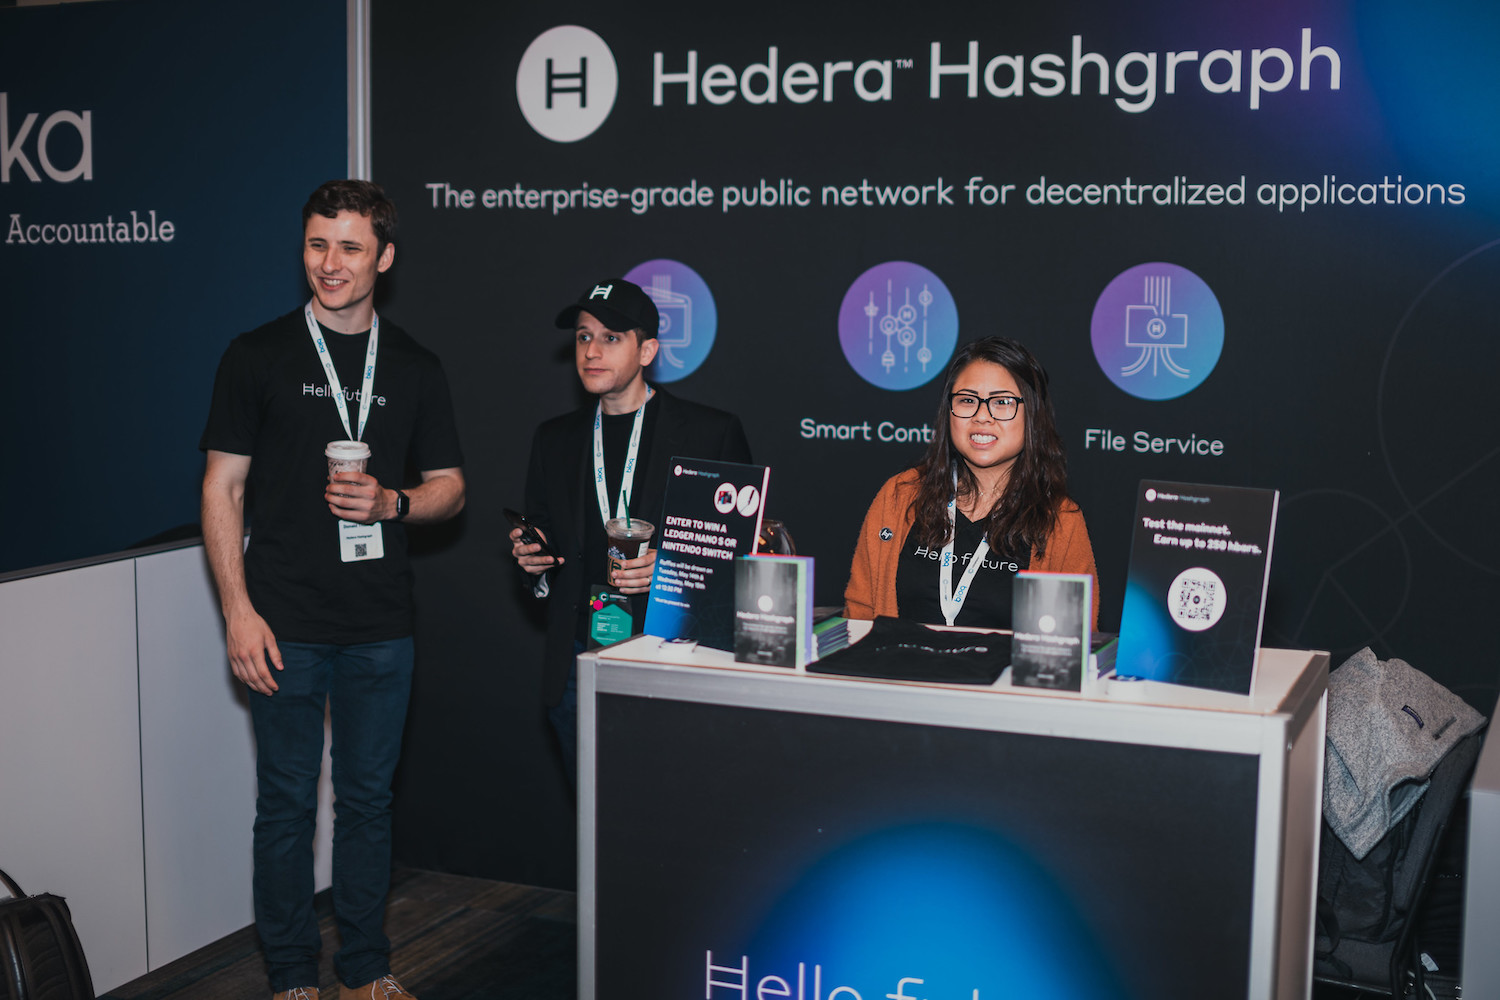 IBM, Tata Become First Big Techs to Back Hedera Hashgraph Blockchain